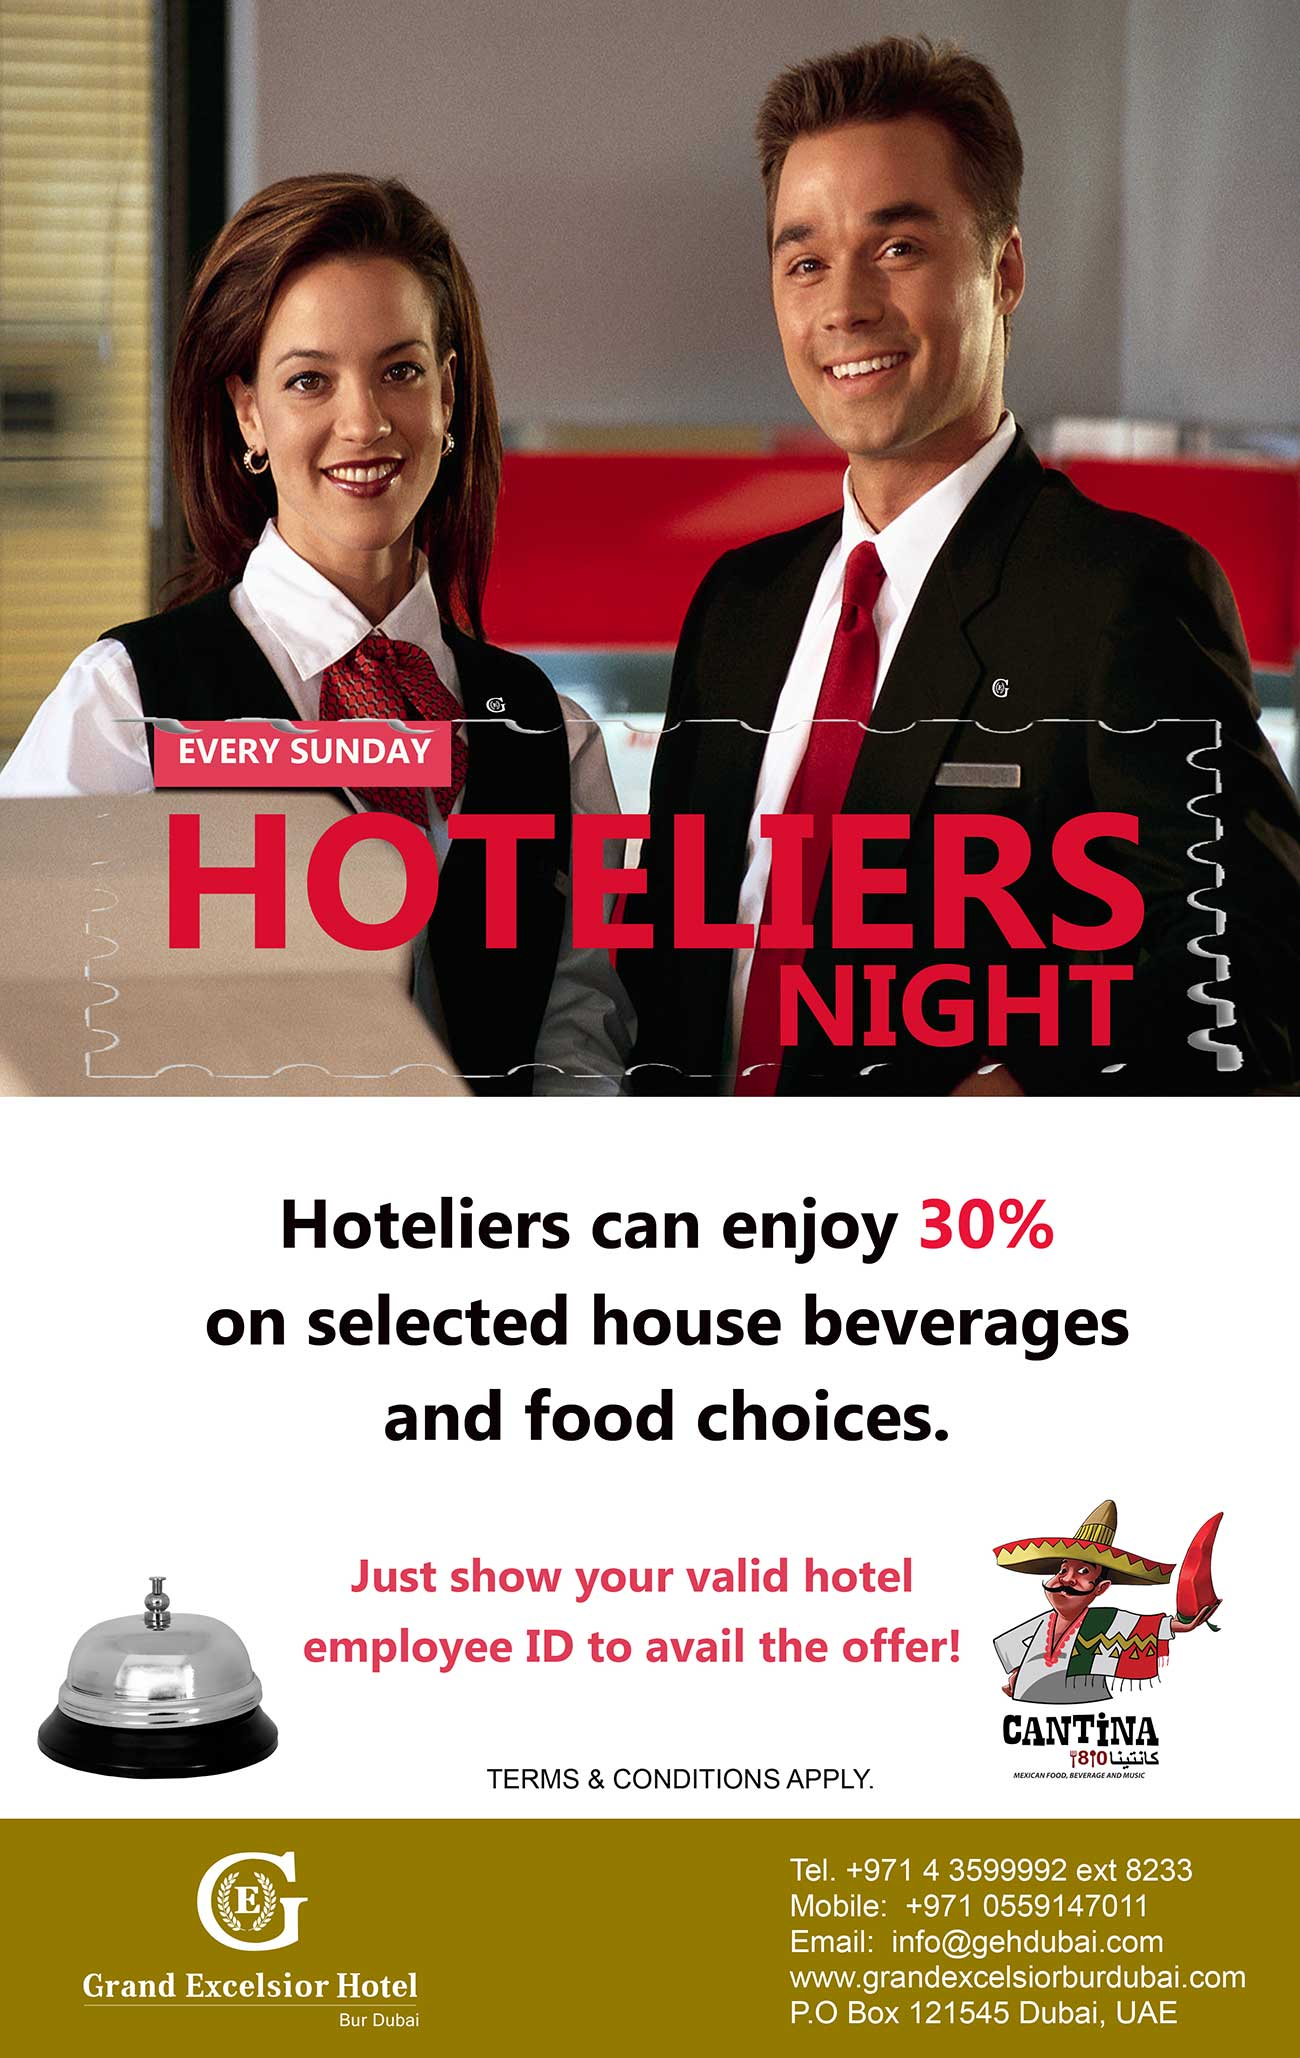 Sunday Hoteliers Night